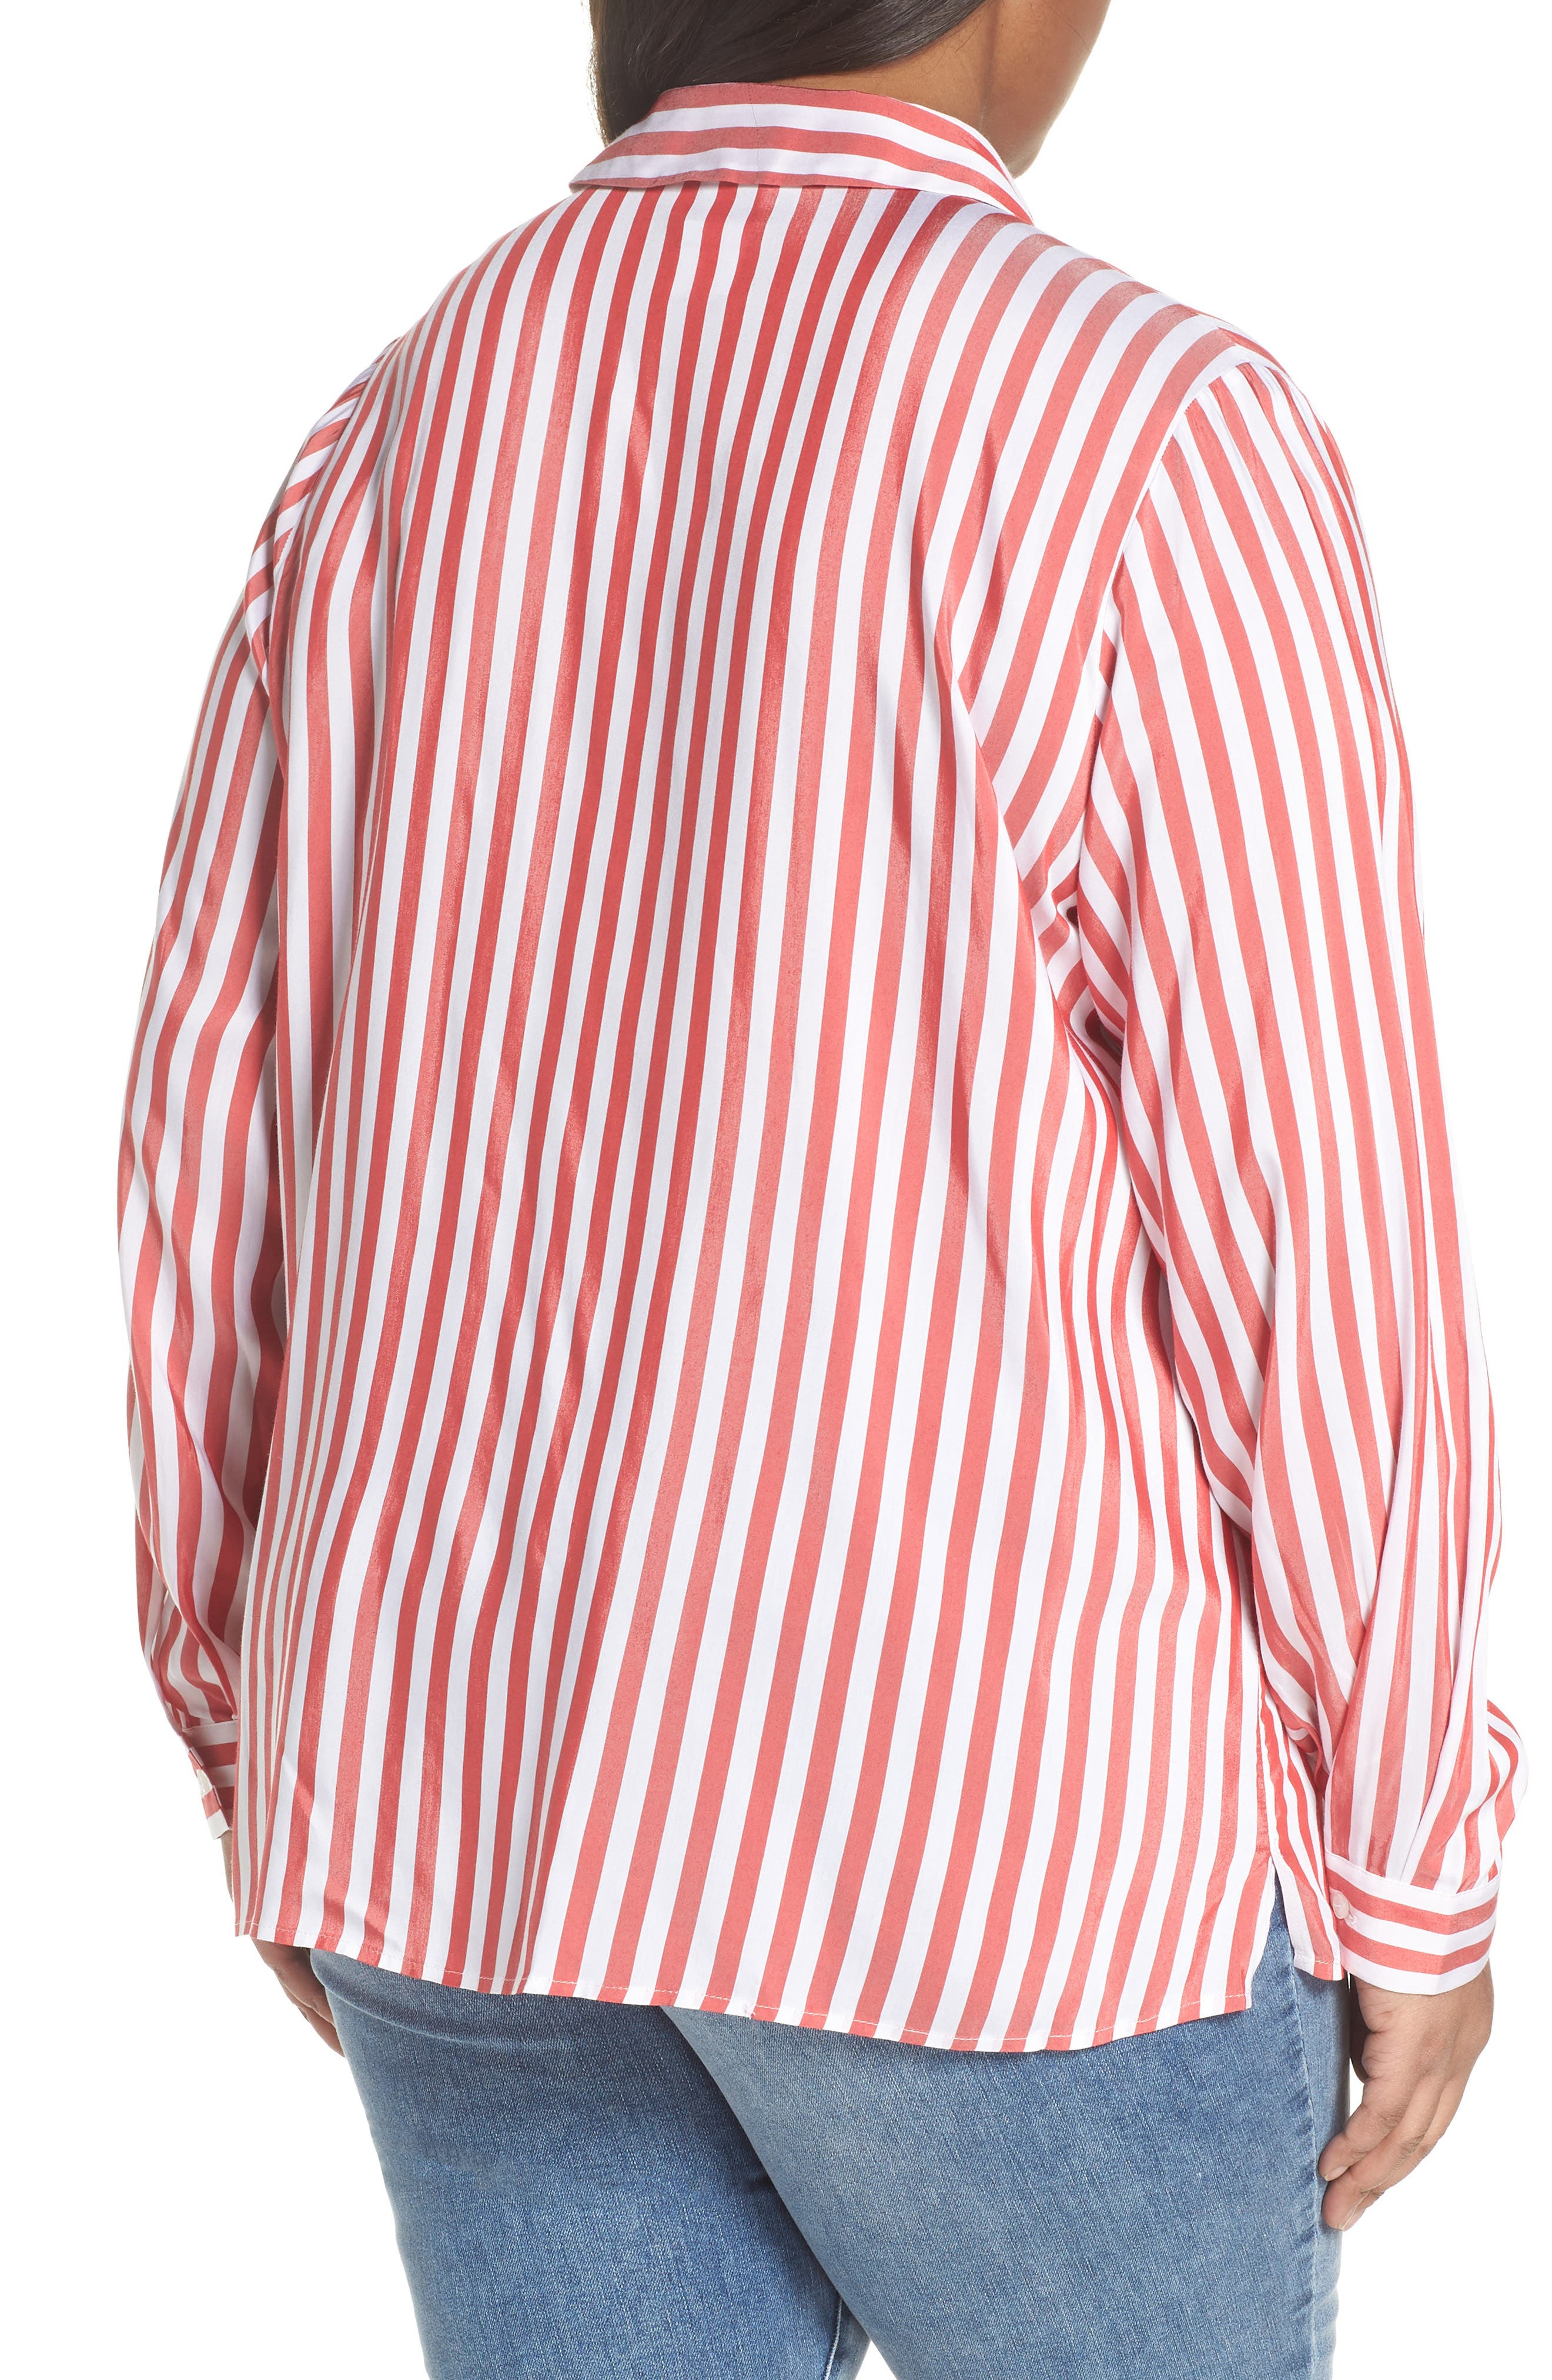 Stripe Blouse,                             Alternate thumbnail 2, color,                             Red/ White Stripe